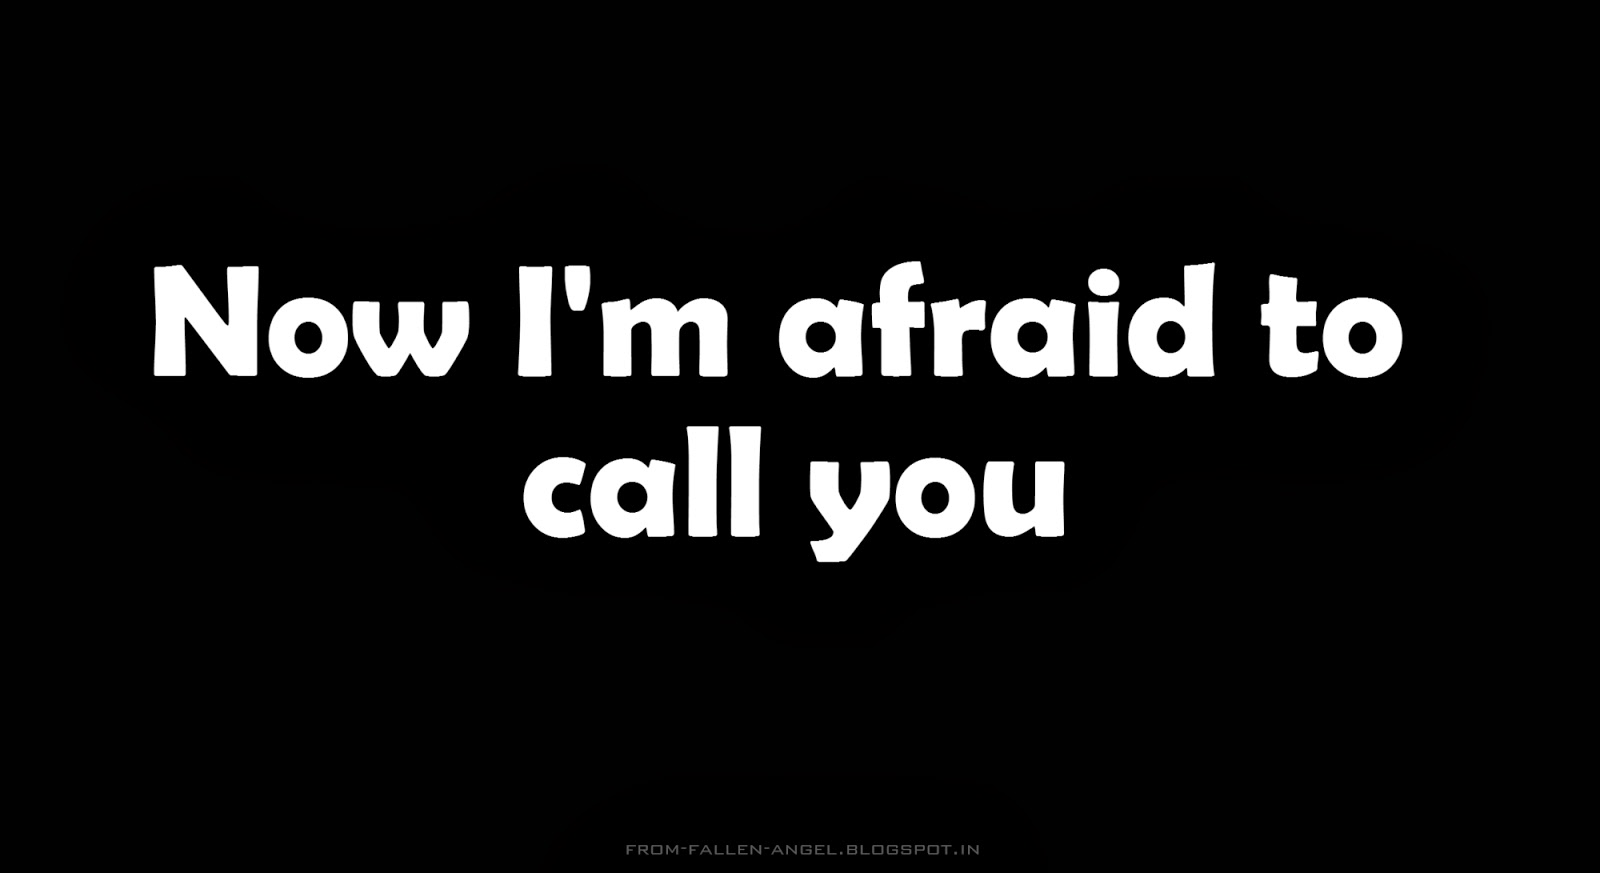 Now I'm afraid to call you